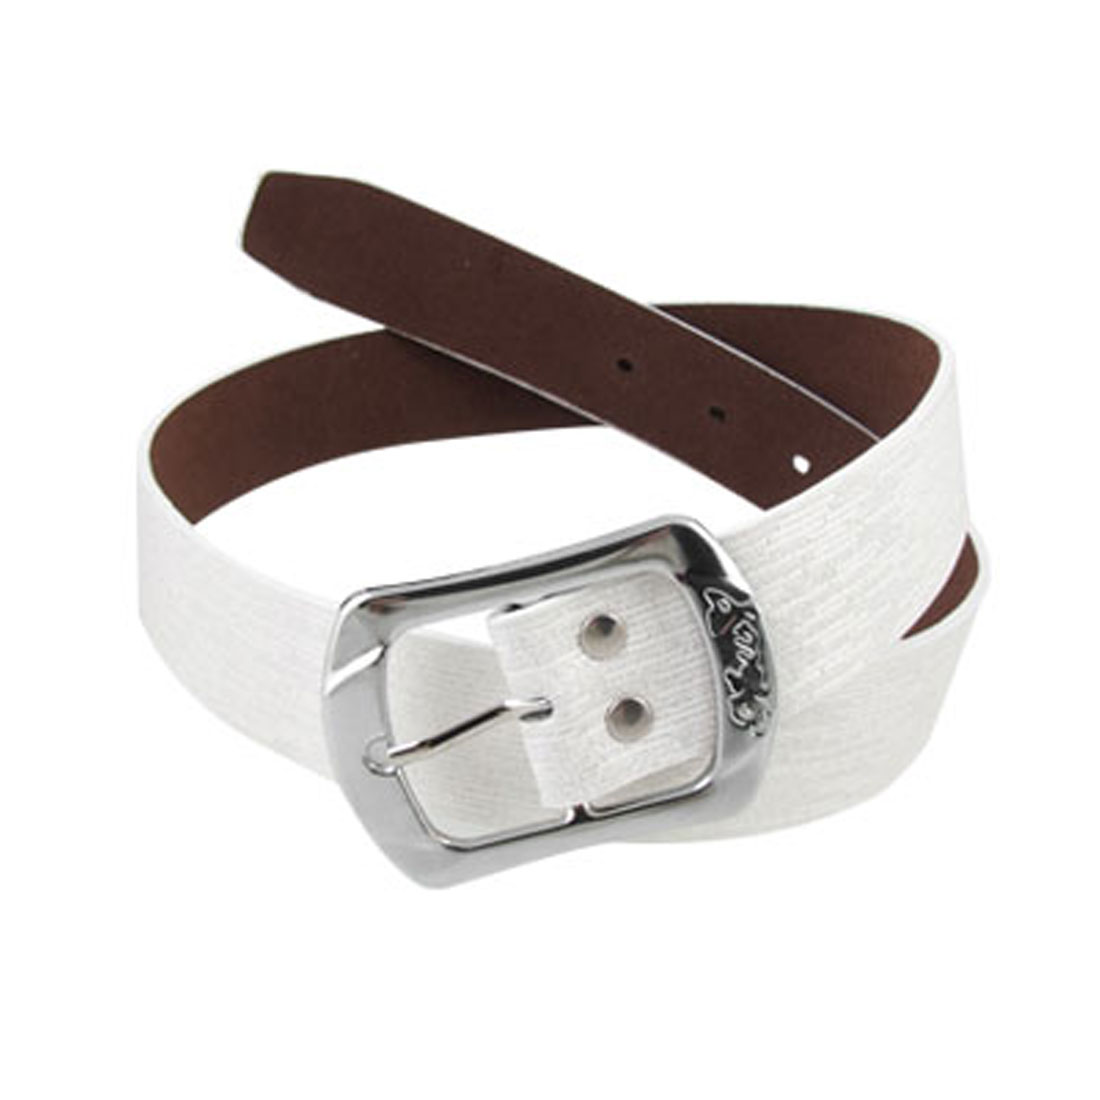 Faux Leather White Glittery Single Prong Ladies Belt